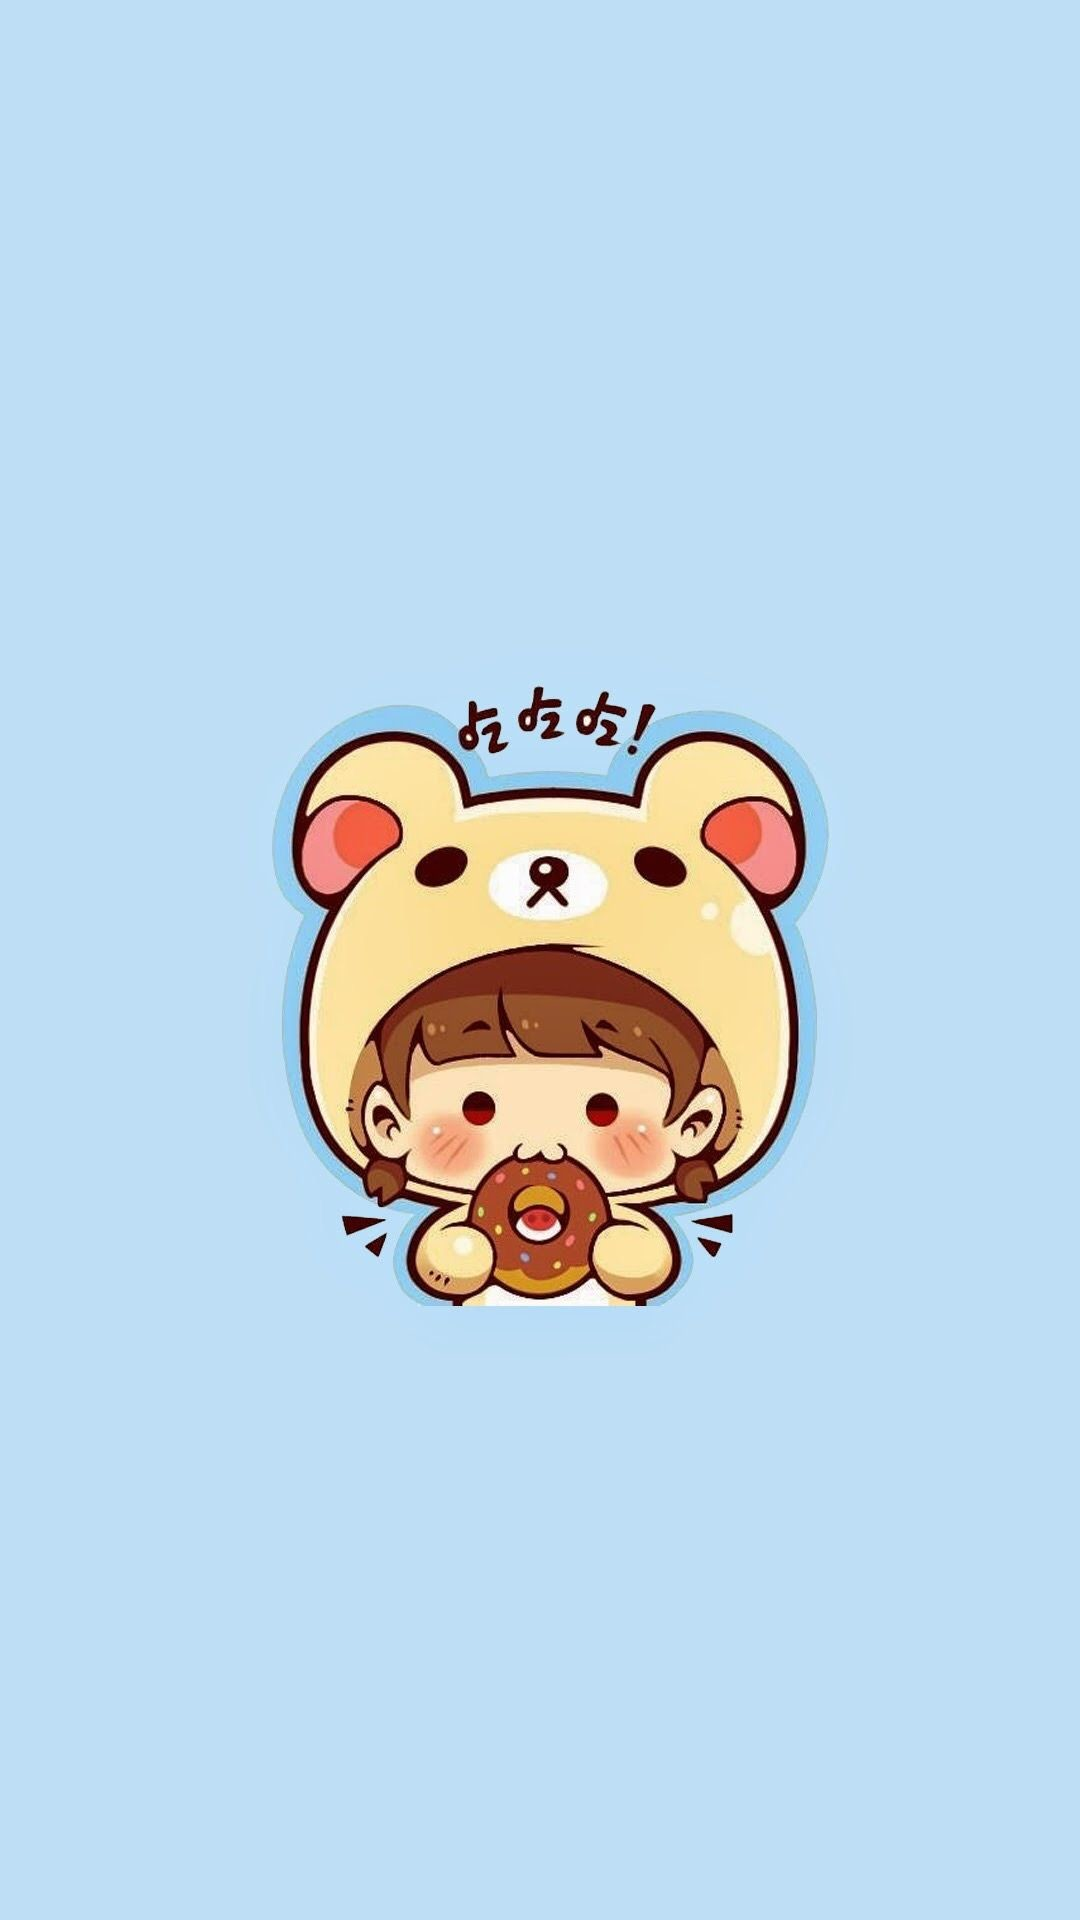 Res: 1080x1920, Couple Wallpaper, Kawaii Wallpaper, Kawaii Cute, Iphone Wallpapers,  Monsters, Japanese, Happy, Gao, Rilakkuma